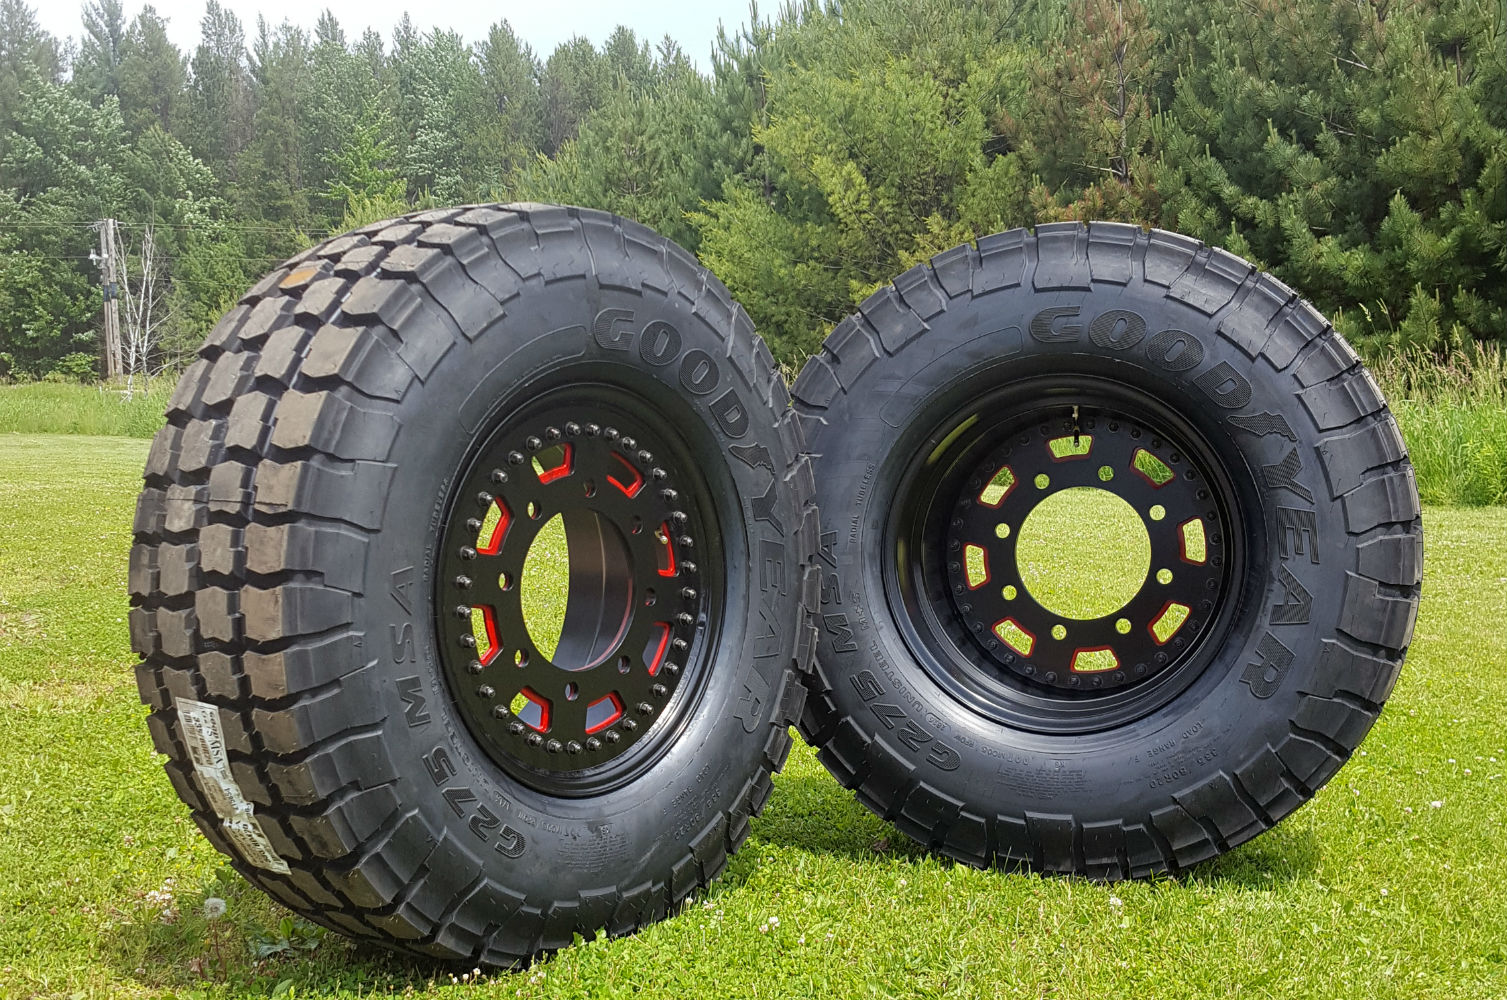 Welcome To Stazworks Extreme Offroad Tires Page